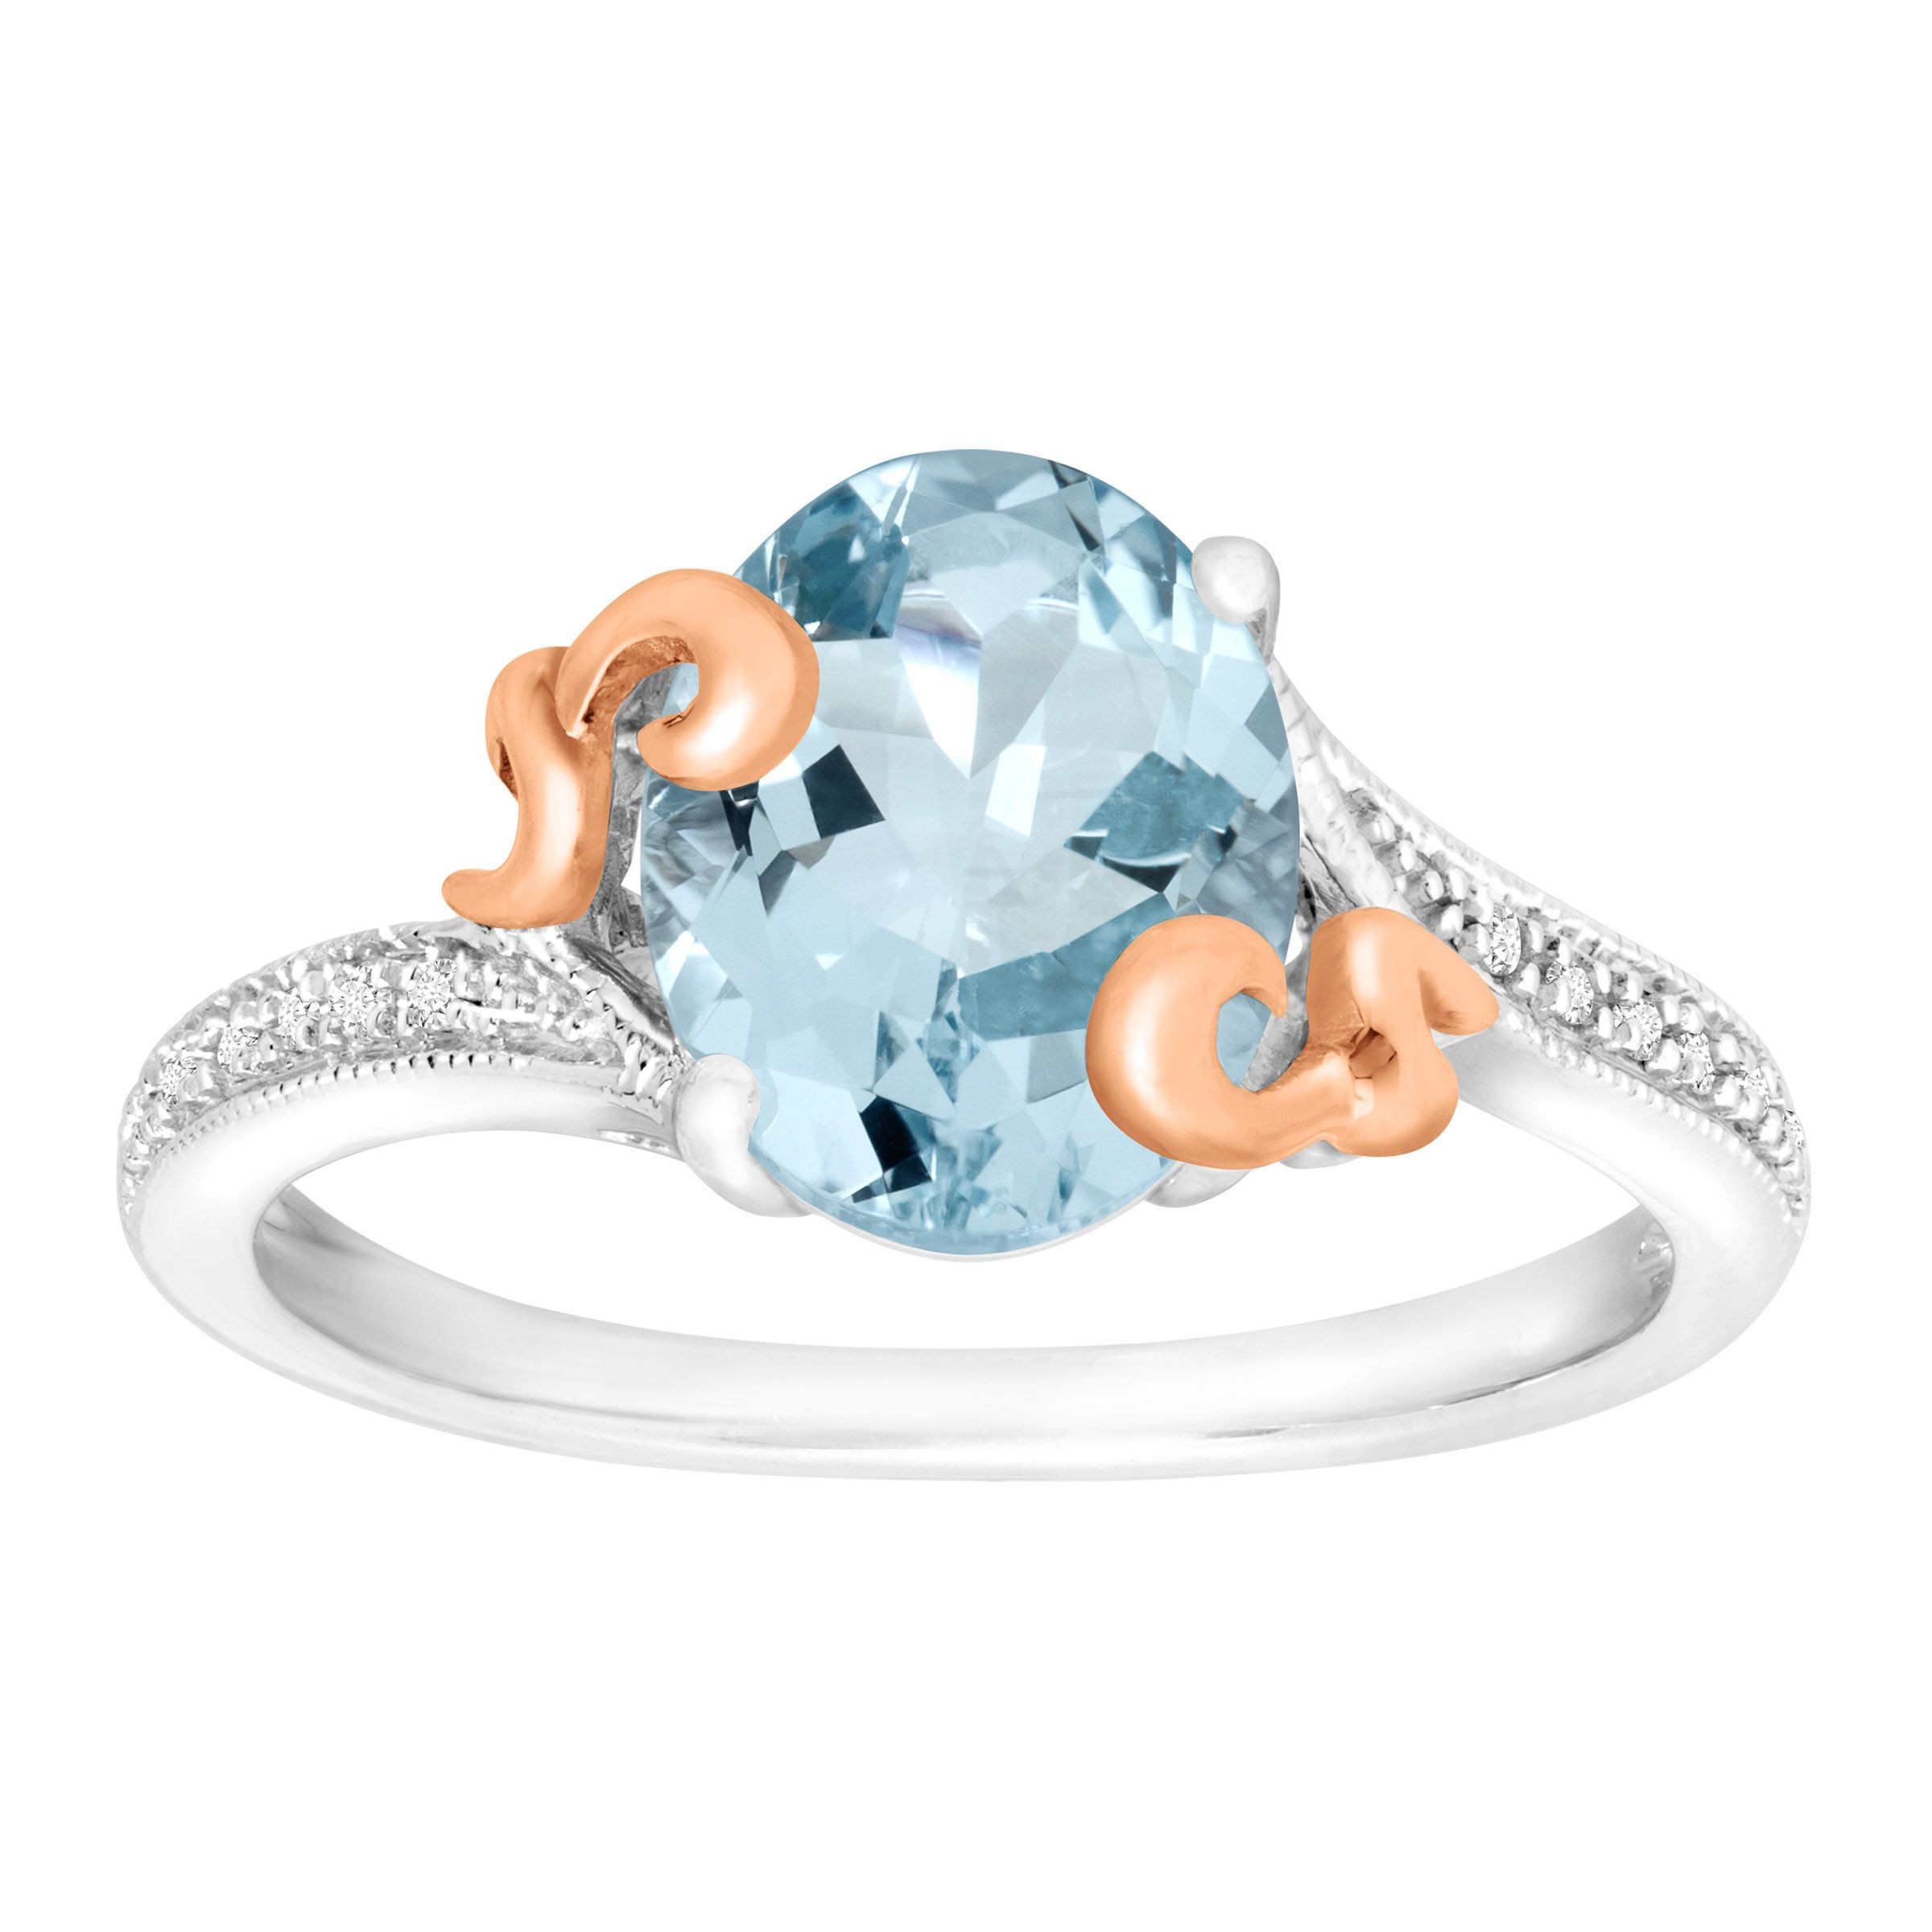 jewelry aquamarine ring dejonghe original jewellery product